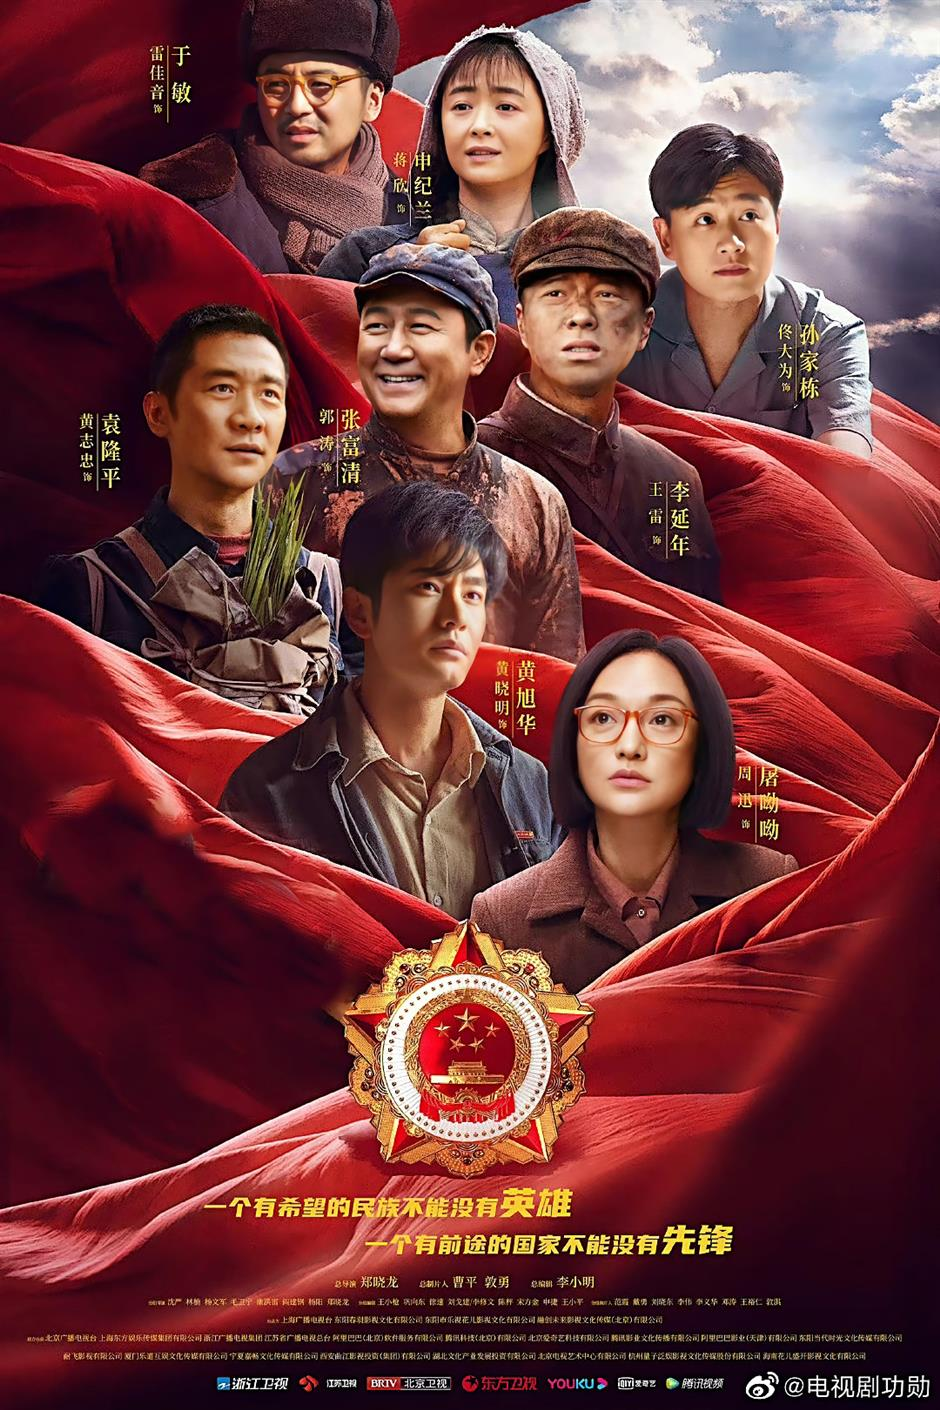 Drama series pays tribute to China's heroes